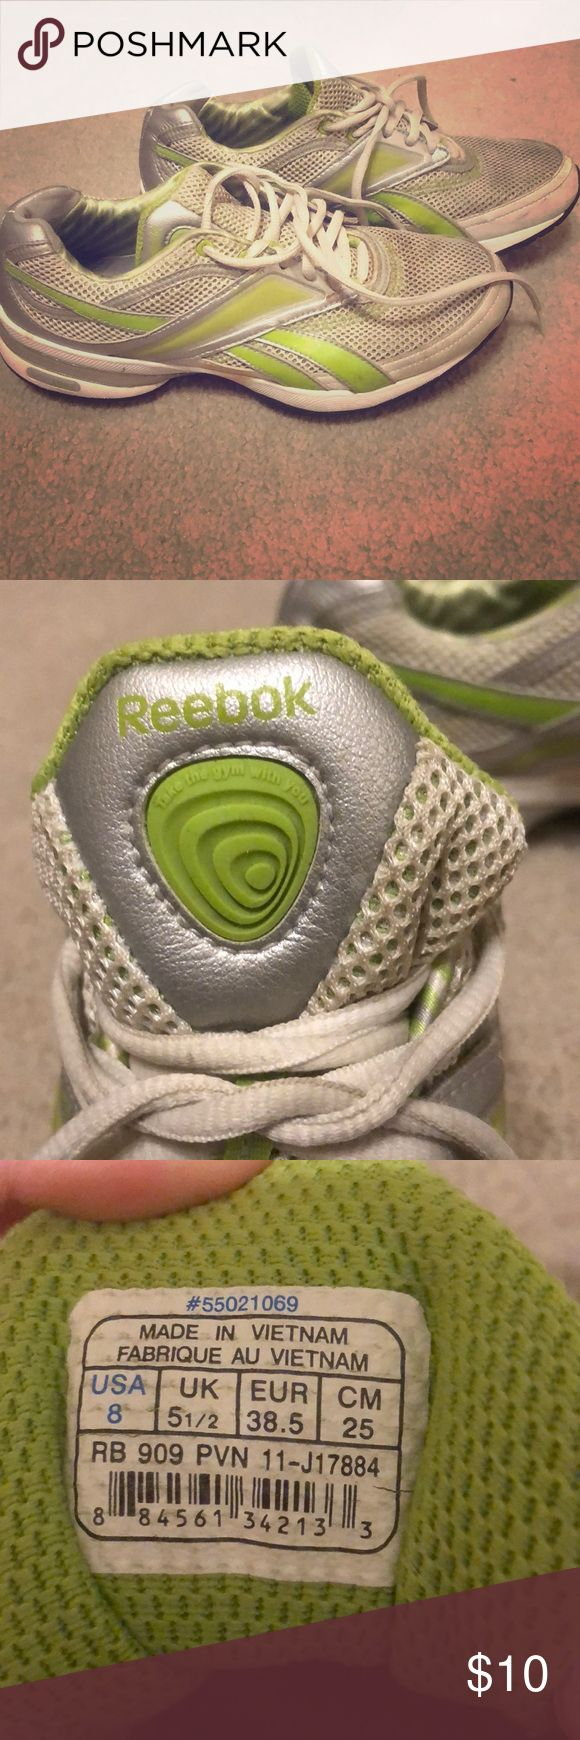 Reebok's size 8. Balance bottoms. Awesome balance tennis shoes. Have been worn many times....which is why the price is so low 😃 Reebok Shoes Athletic Shoes